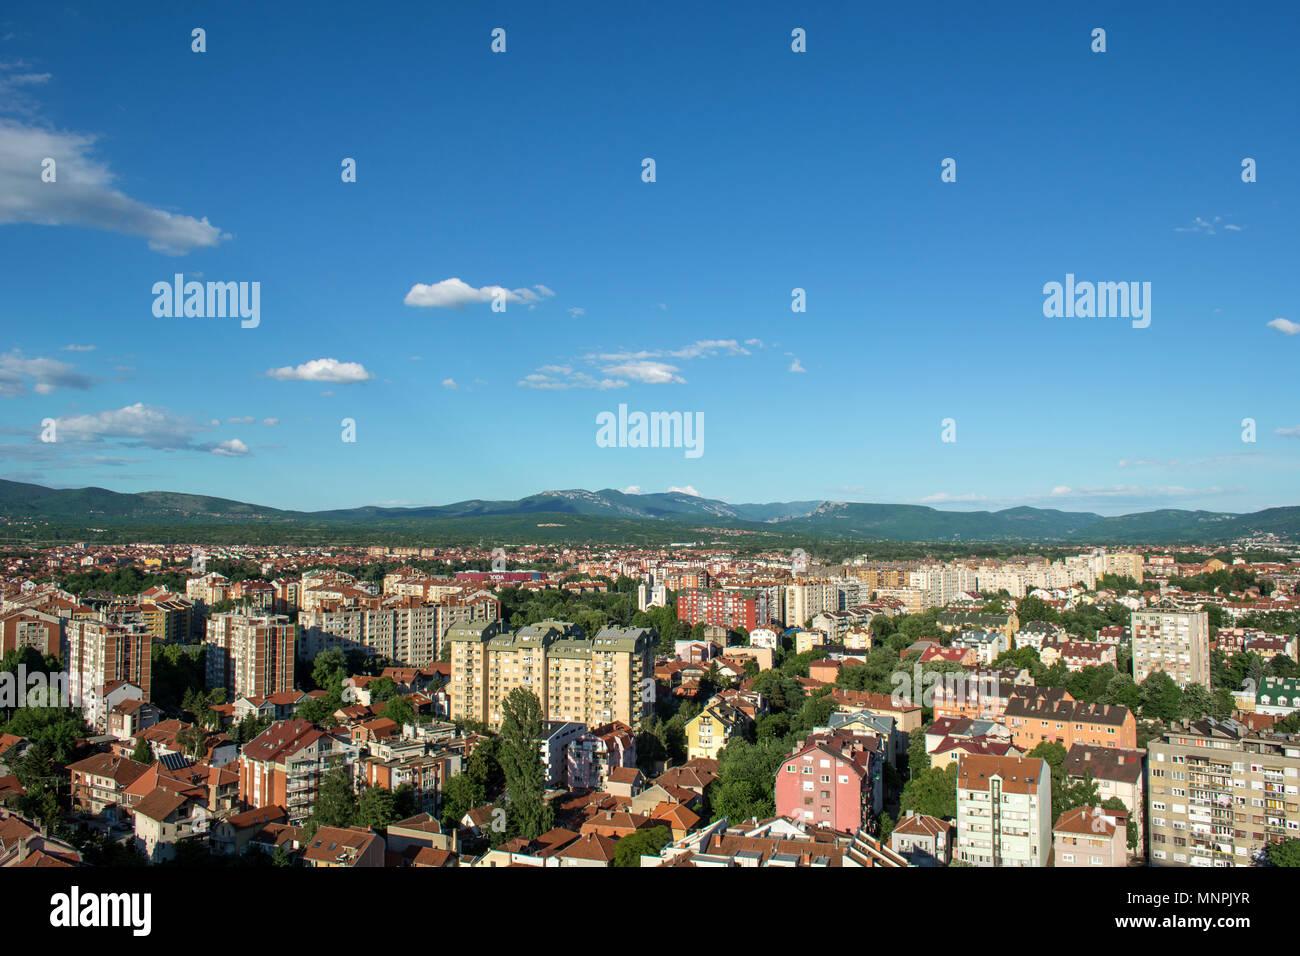 nis-serbia-may-16-2018-scenery-with-city